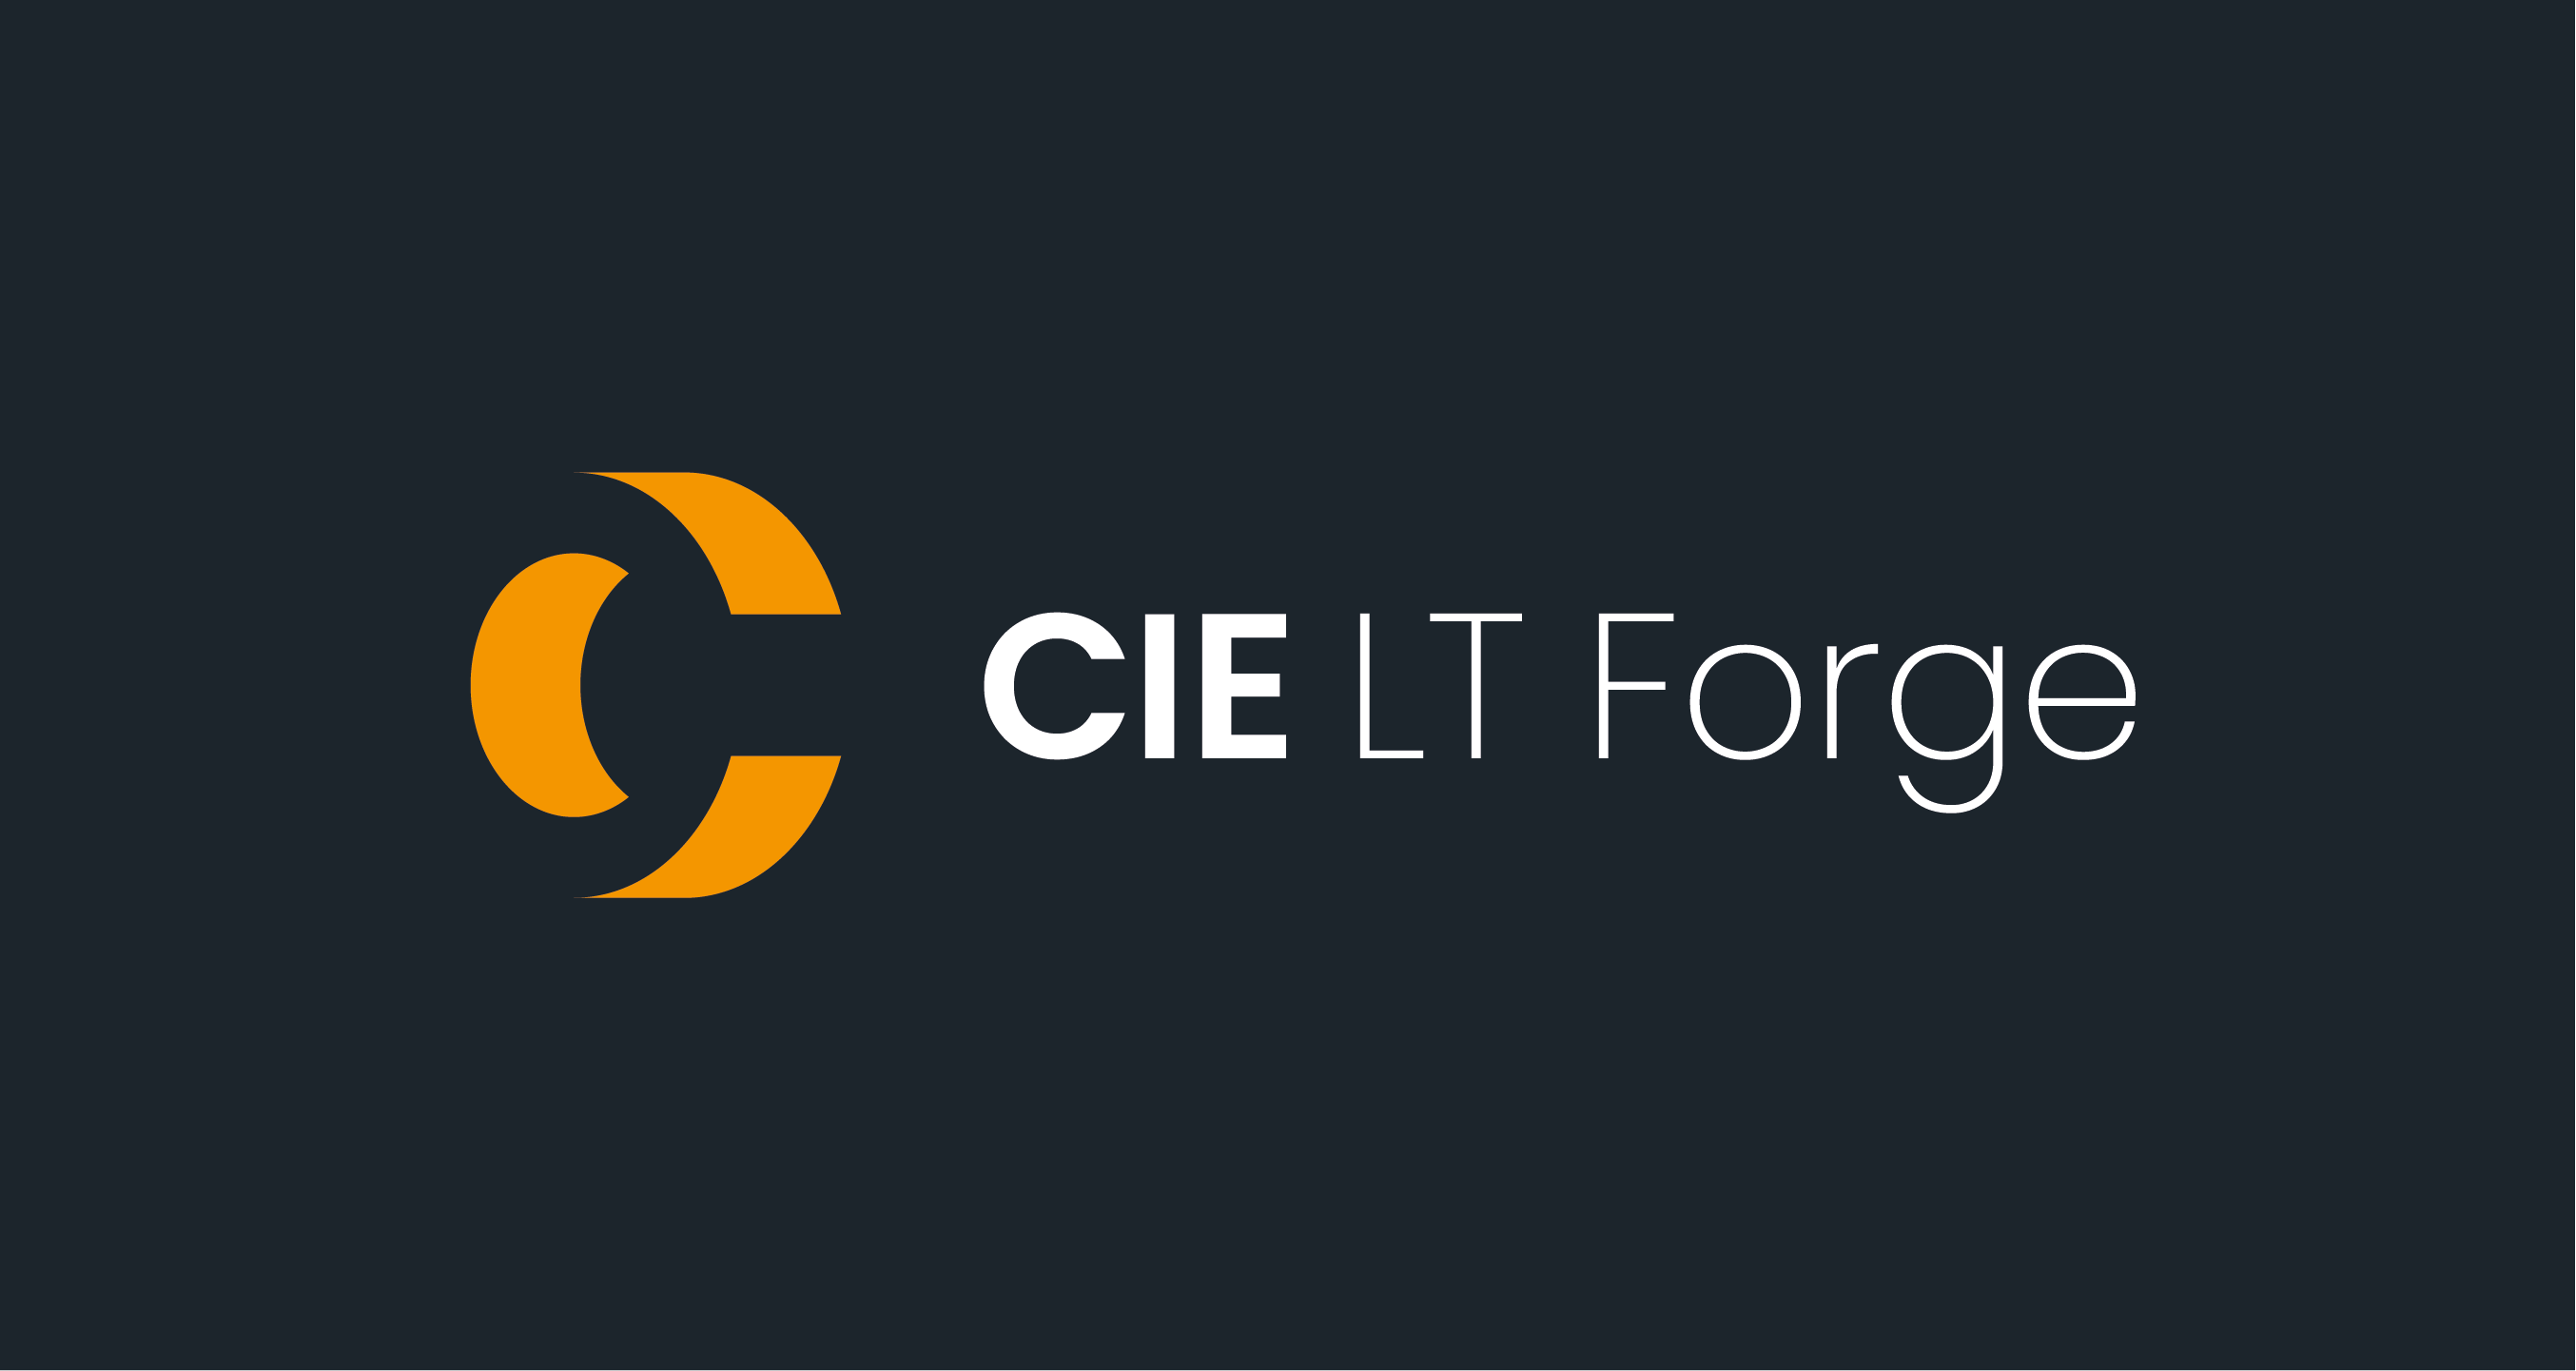 CIE LT Forge